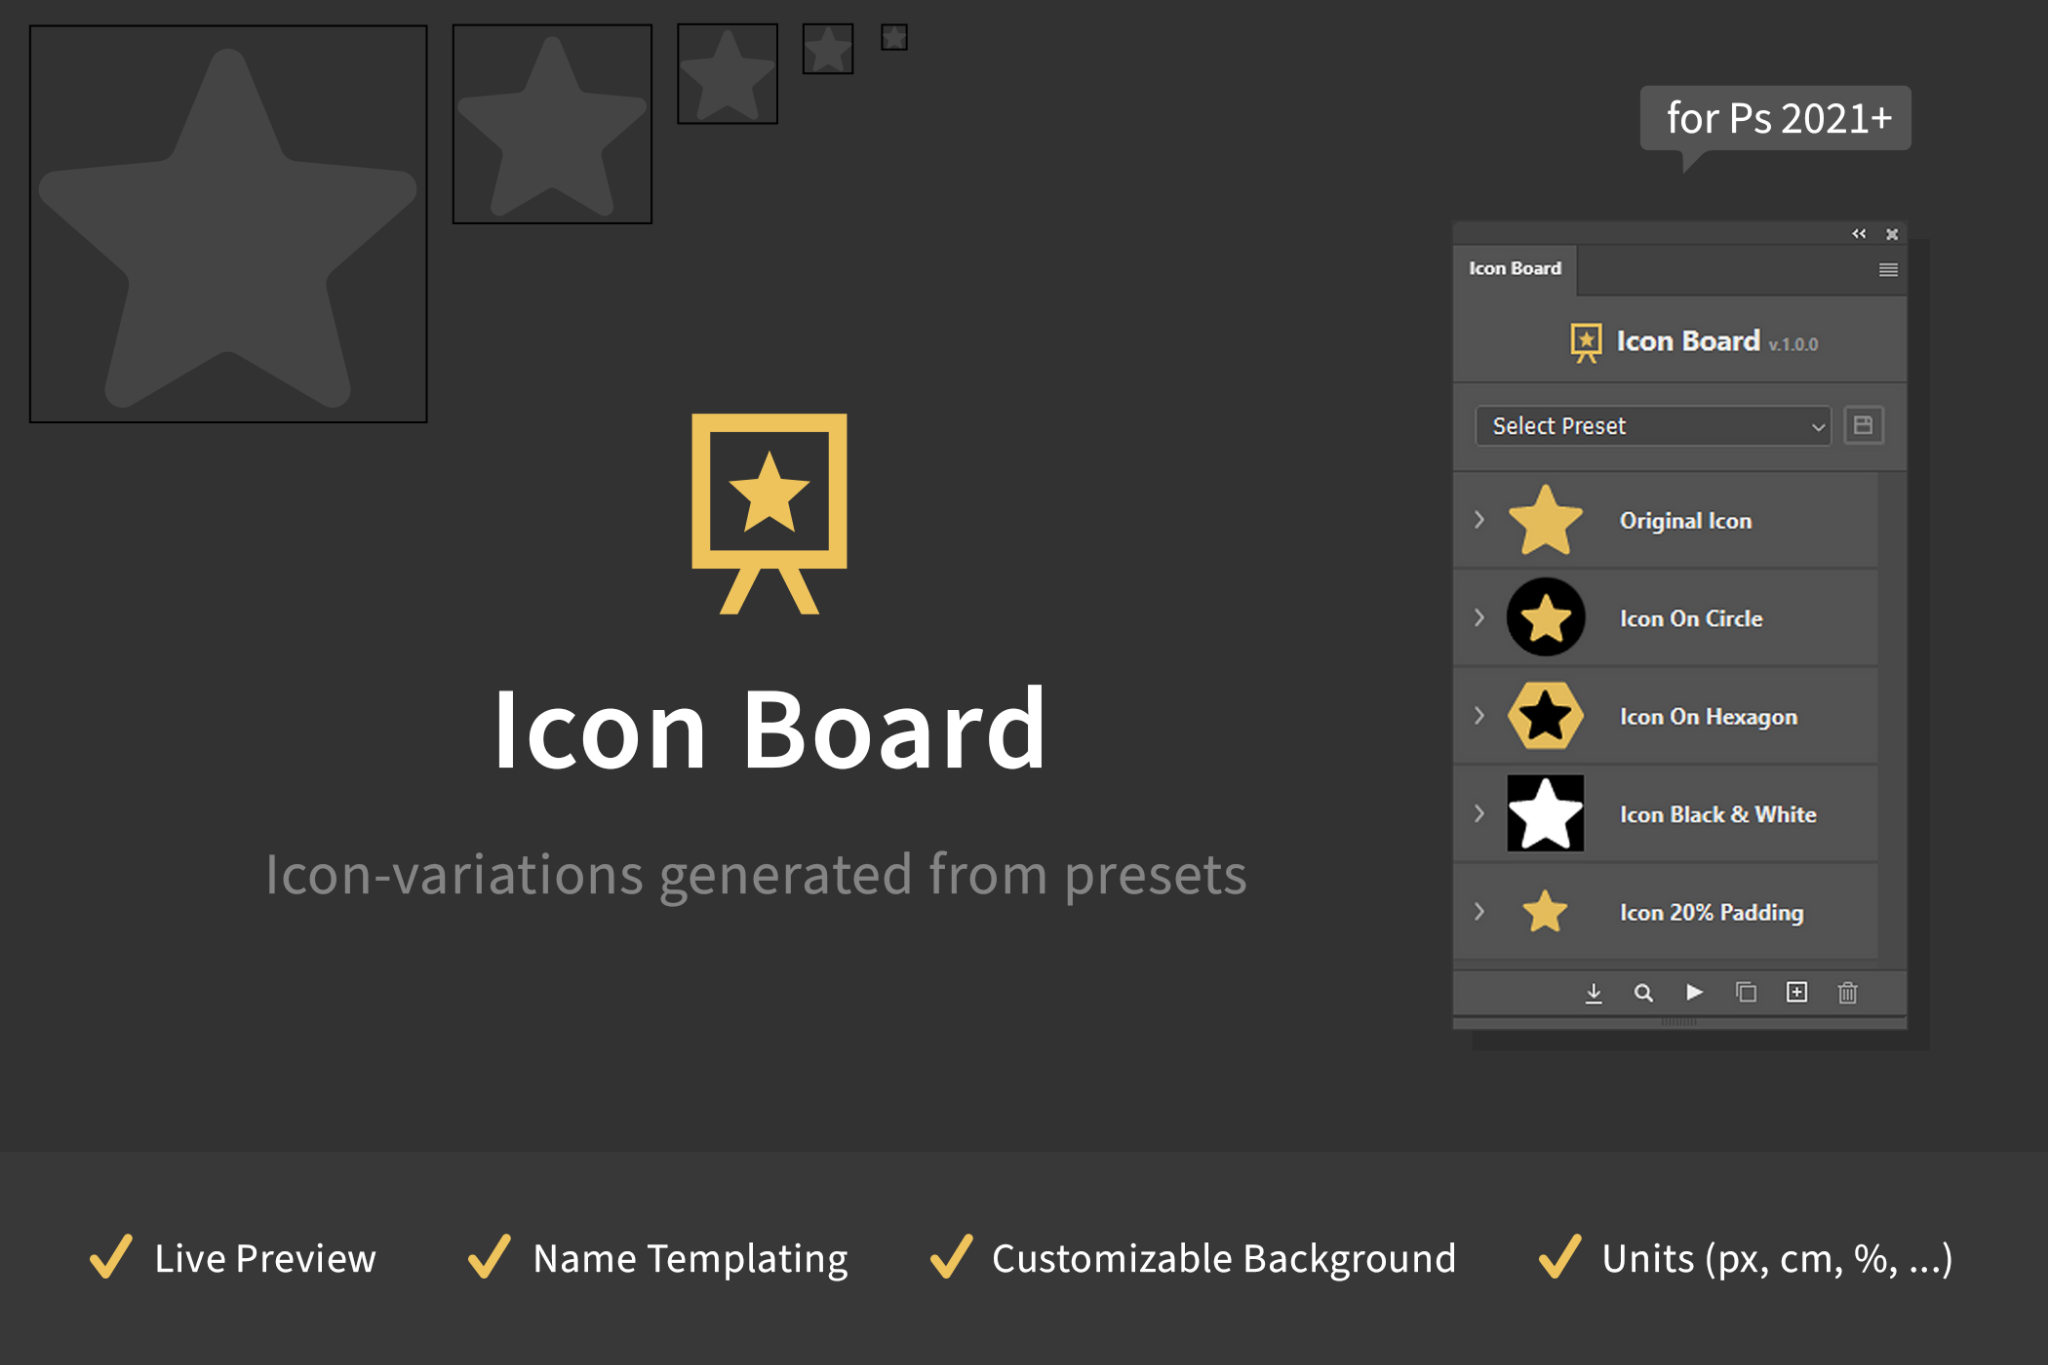 Icon Board - Icon Variations Generated From Presets